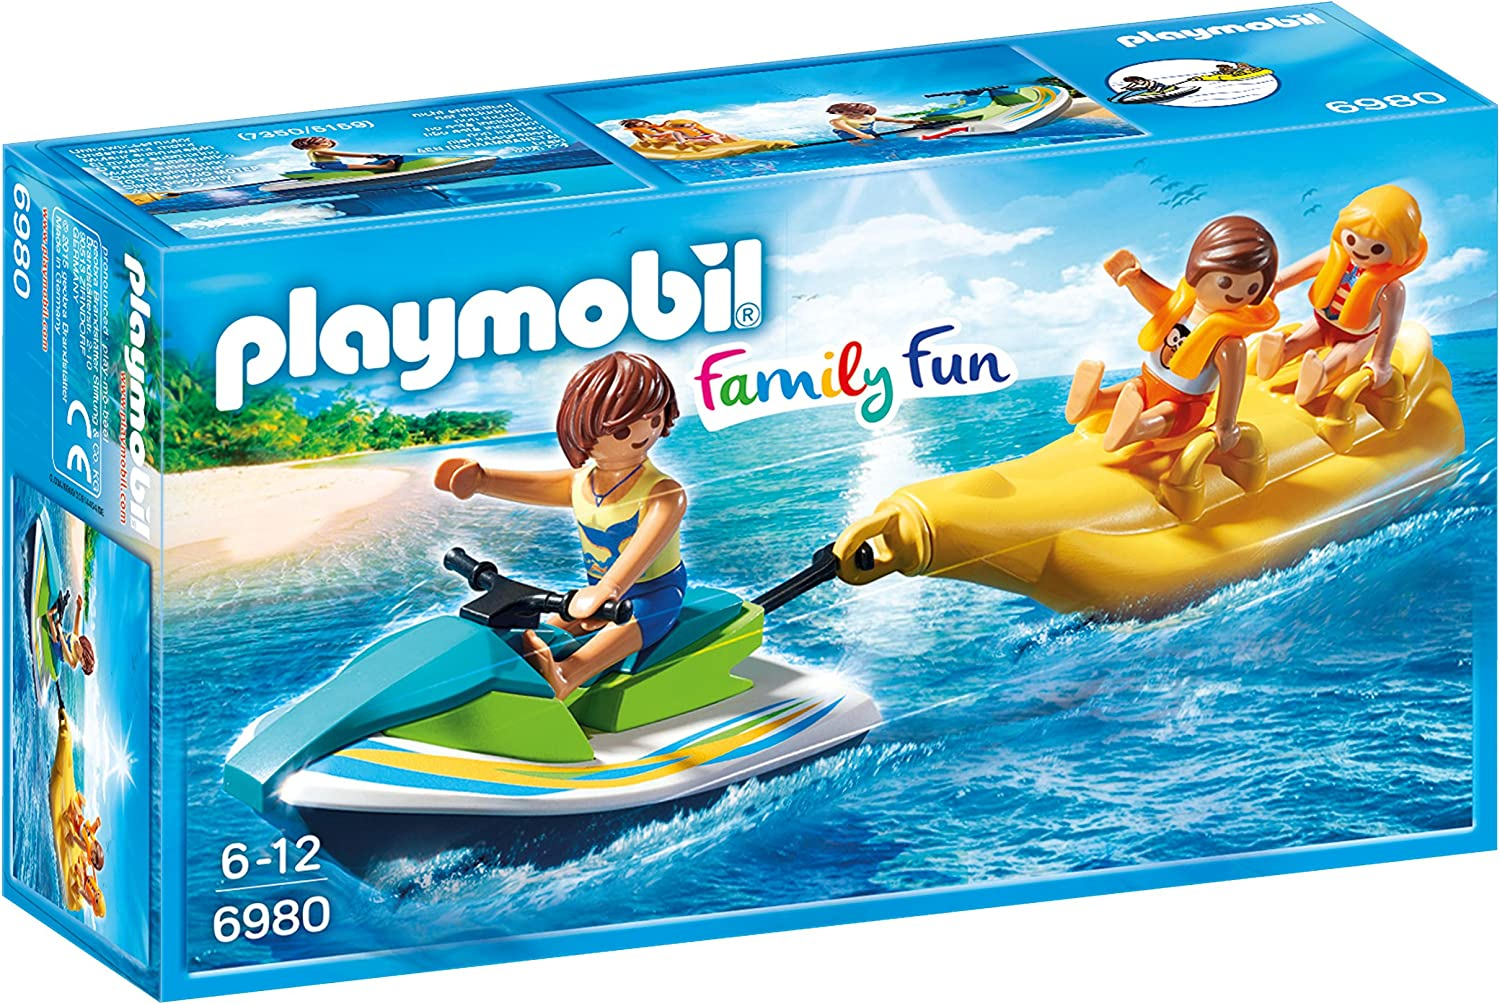 Playmobil Crucero-6980 Playset, Multicolor, Miscelanea (6980)